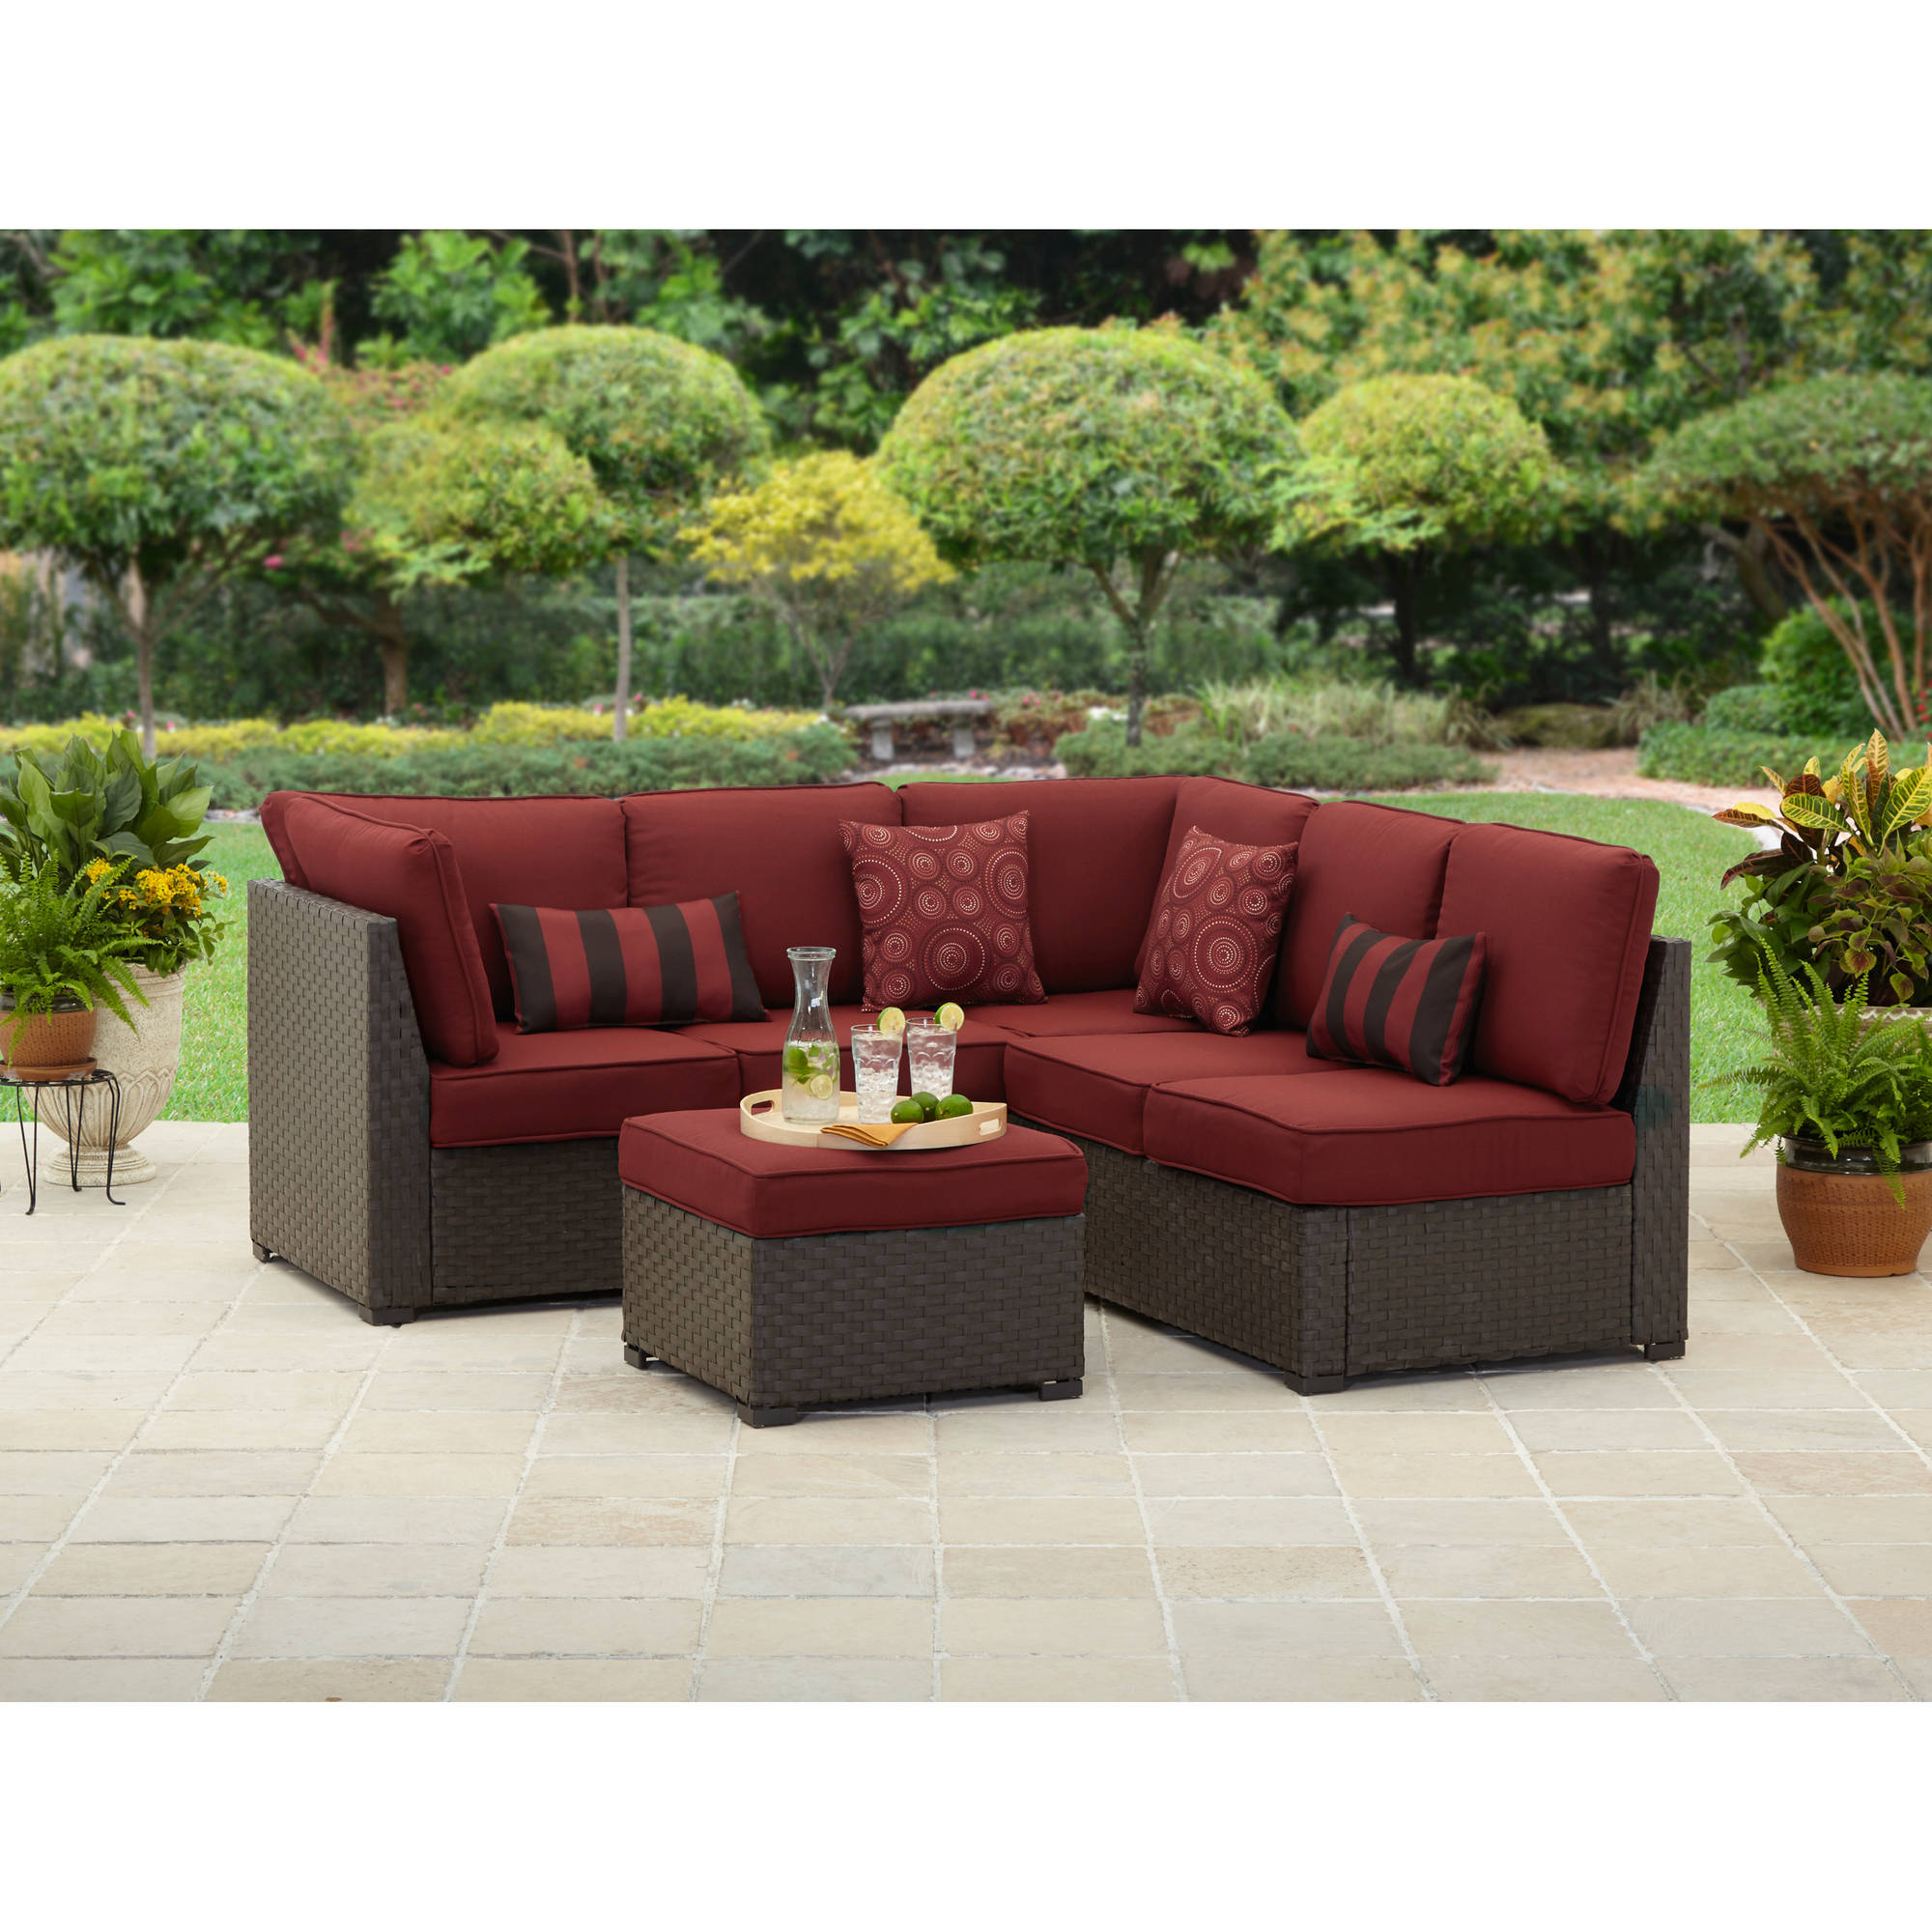 outdoor sectional sofa better homes and gardens rush valley 3-piece outdoor sectional - walmart.com KNNDJHP